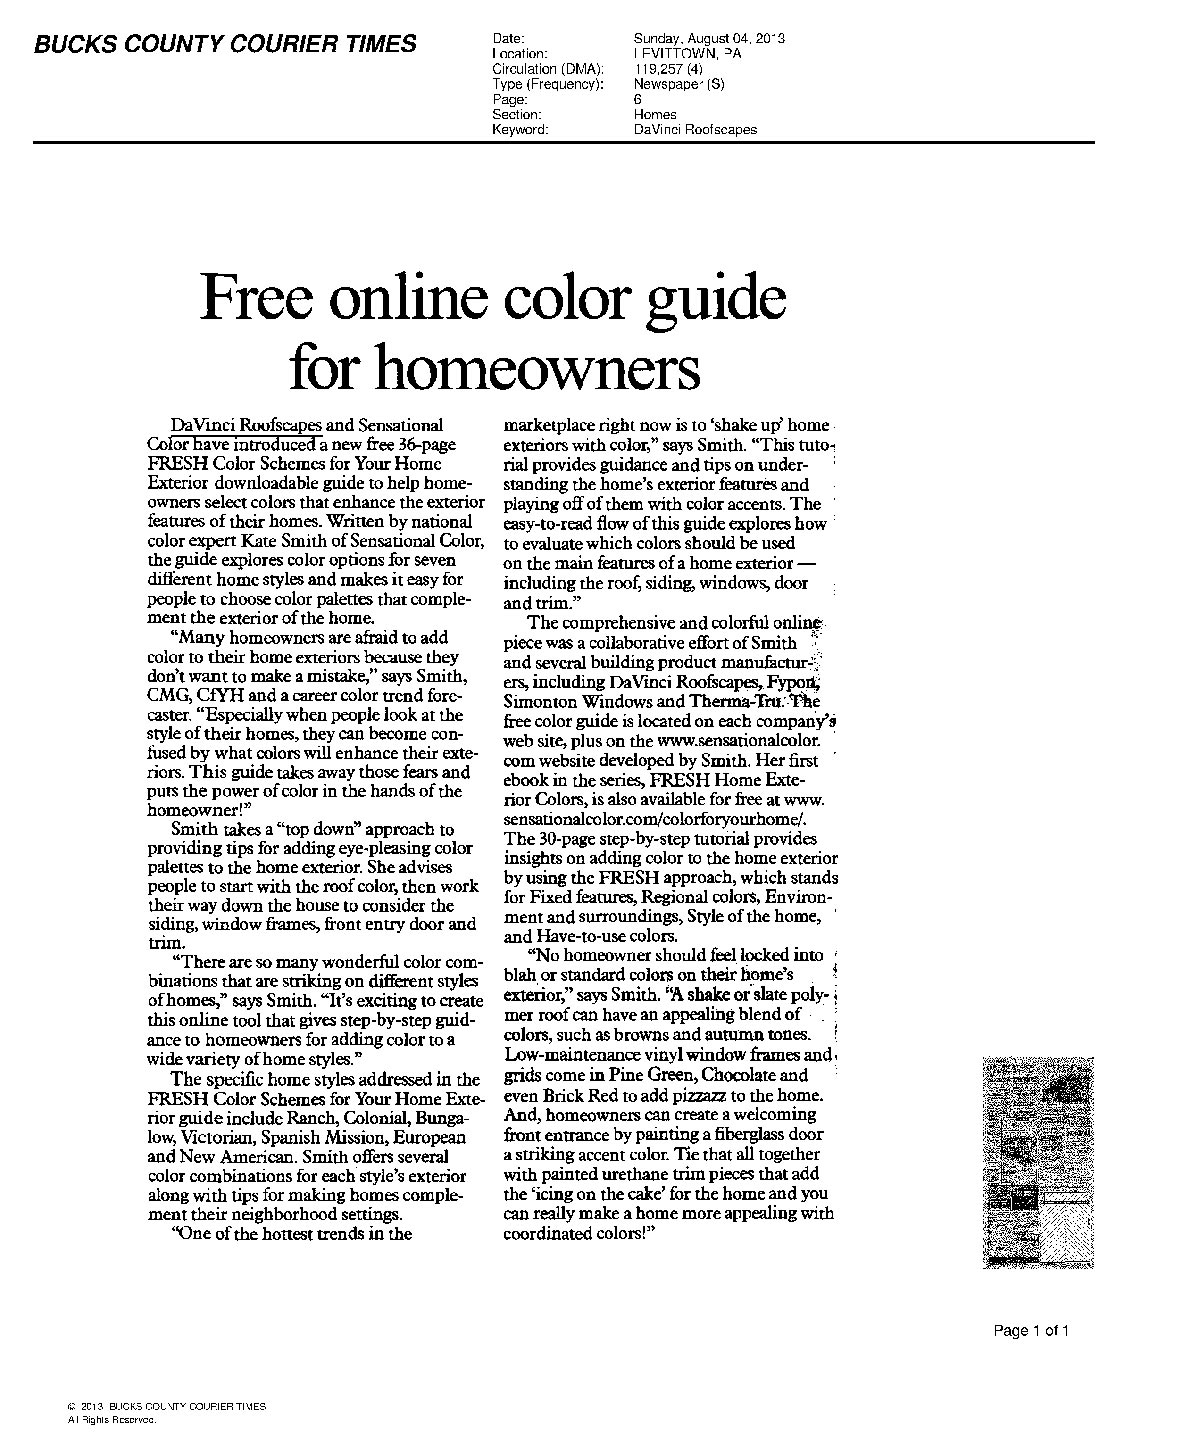 Bucks County Courier Times: Free Online Color Guide